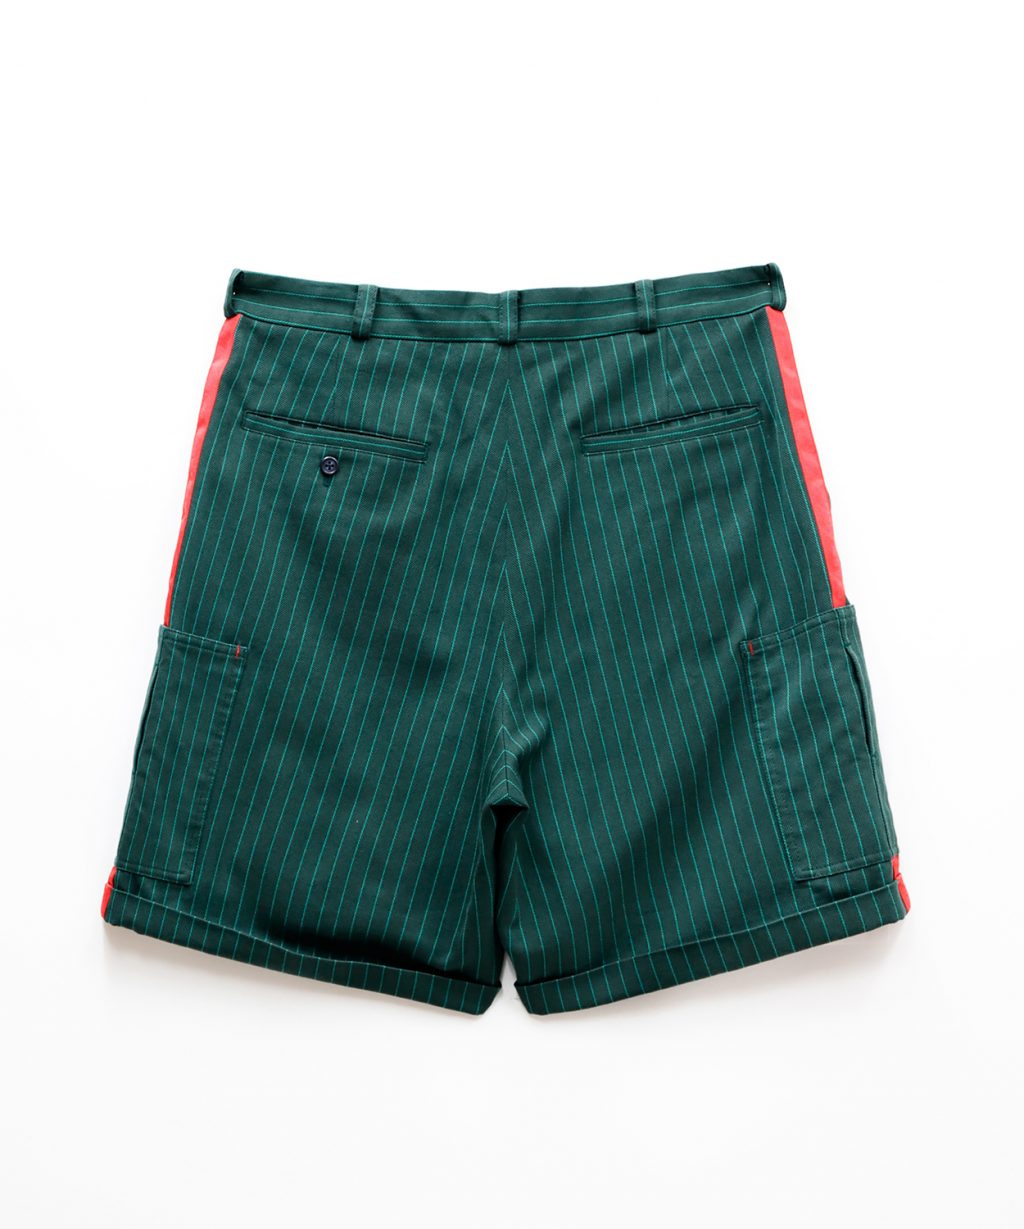 COCA-COLA-STRIPE-SHORTS-green2-1024x1229.jpg